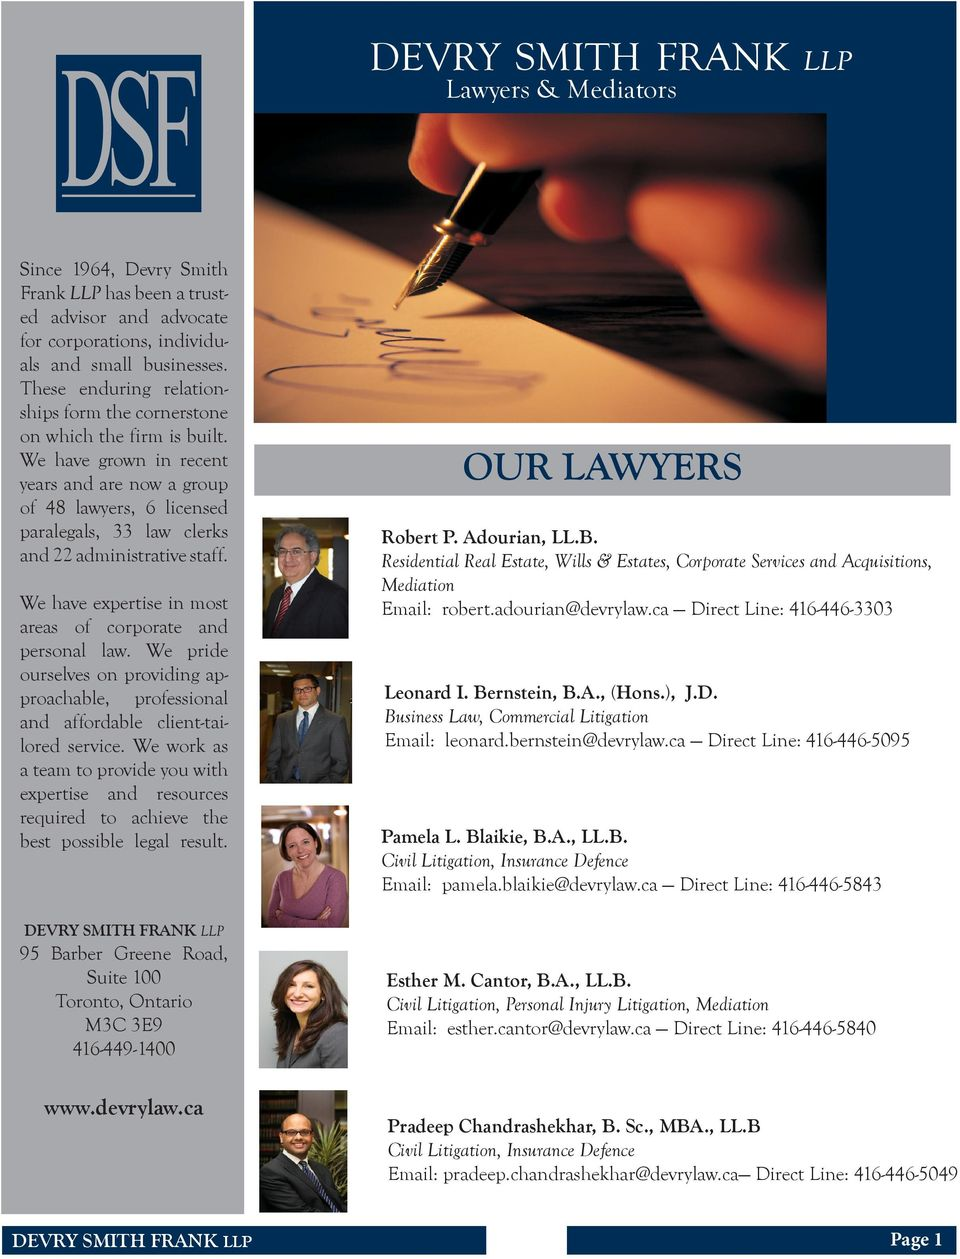 We have grown in recent years and are now a group of 48 lawyers, 6 licensed paralegals, 33 law clerks and 22 administrative staff. We have expertise in most areas of corporate and personal law.